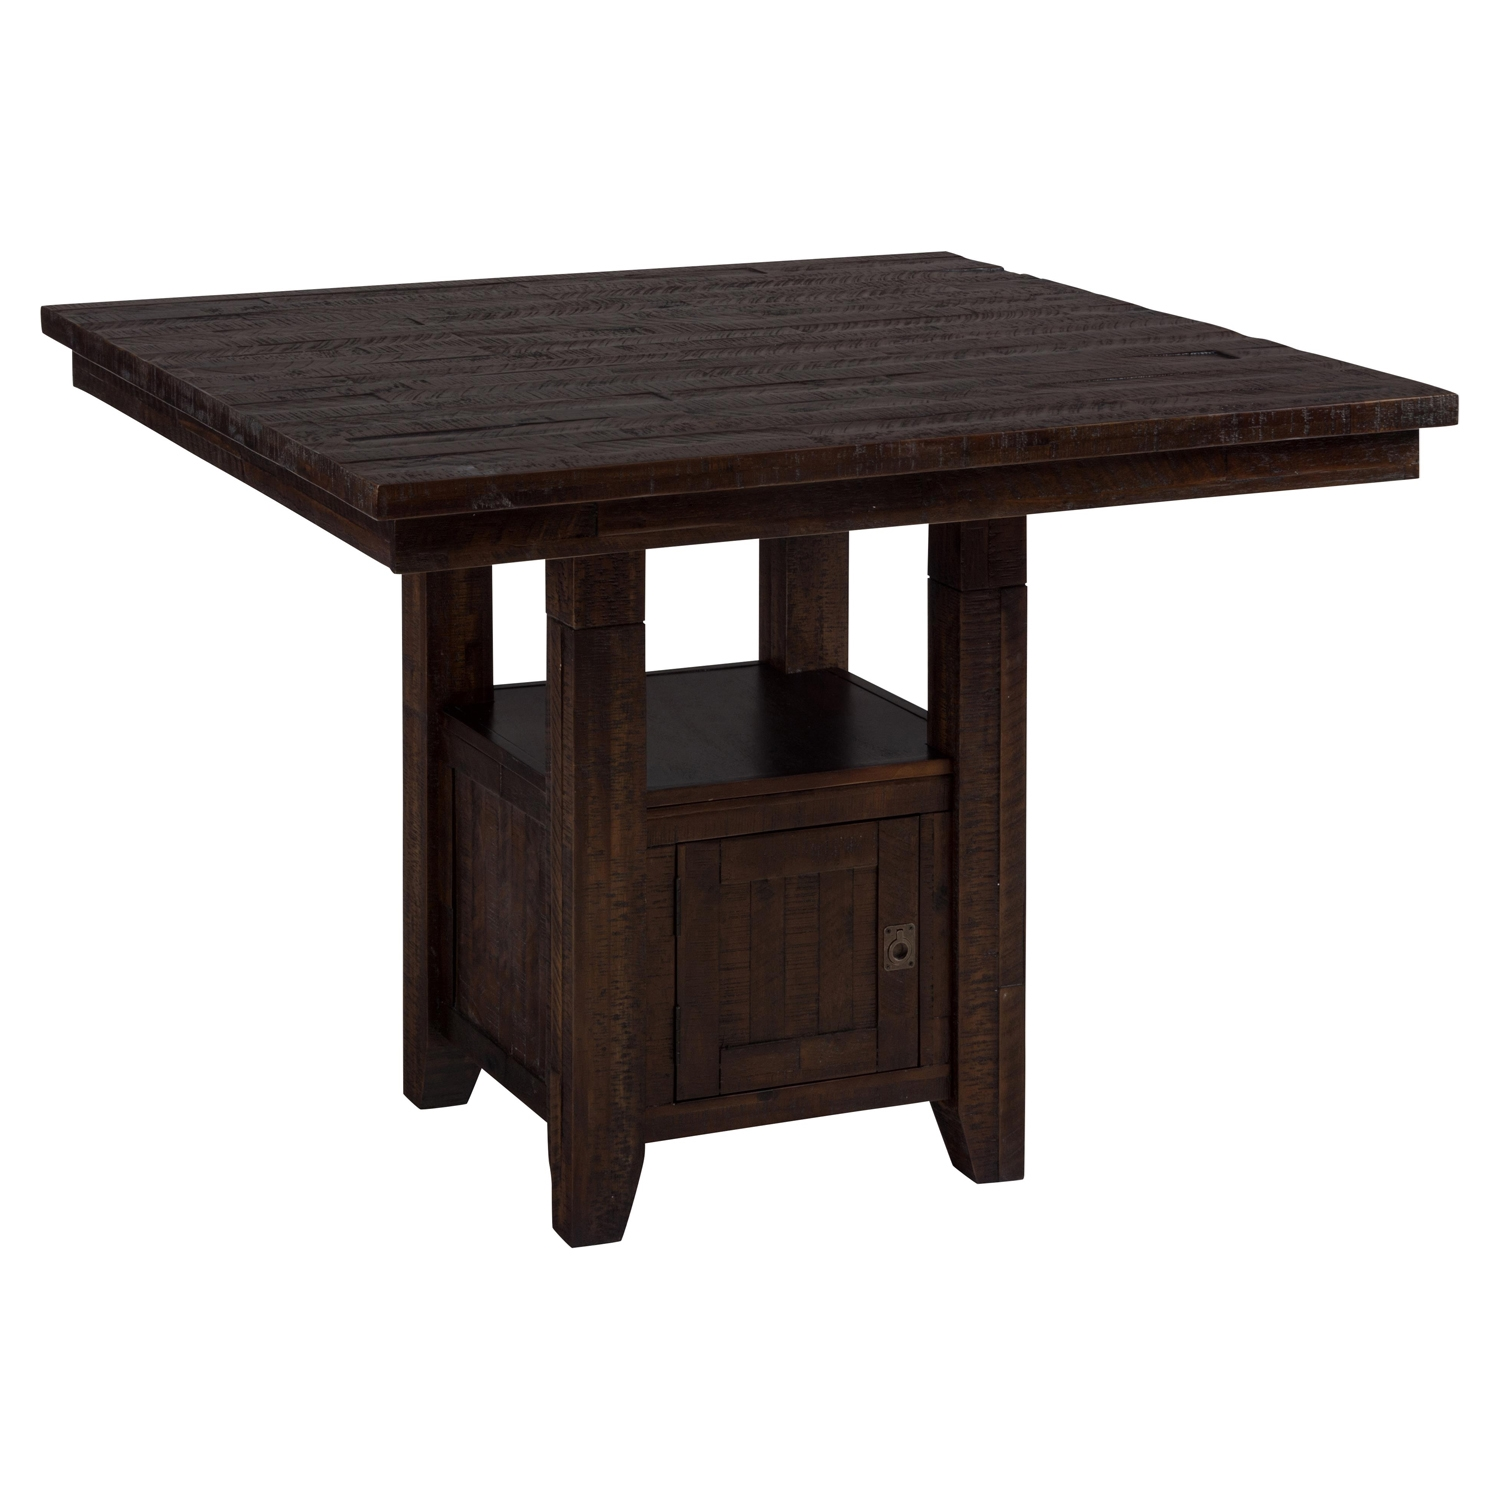 Kona Grove Fixed Pub Table - Storage Base, Chocolate - JOFR-705-48